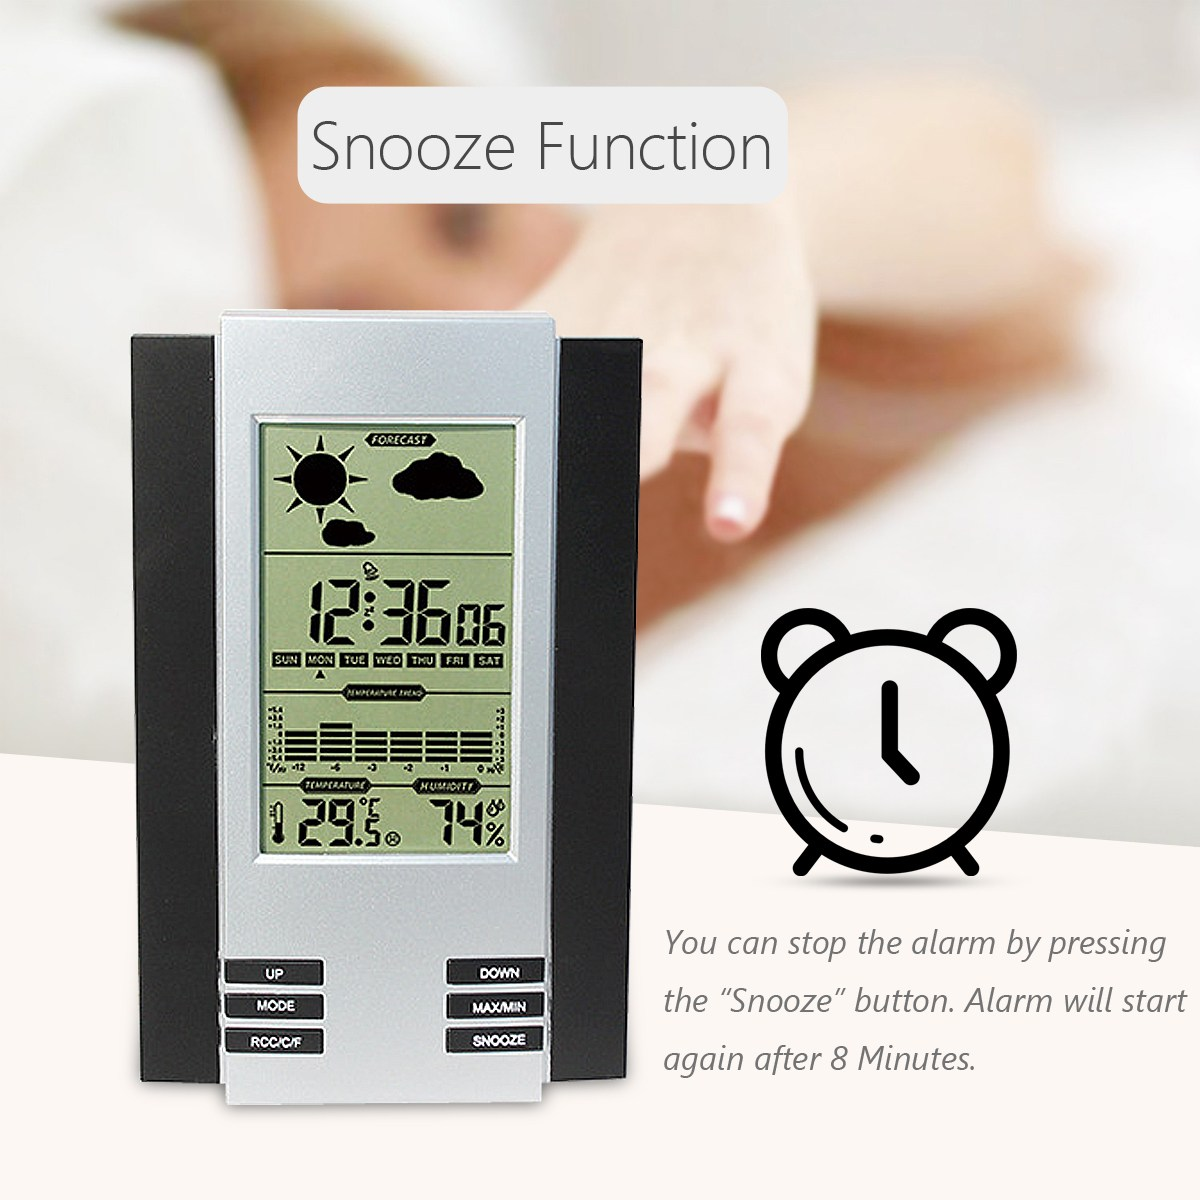 LCD Digital Alarm Clock Screen Weather Forecast Station Temperature Humidity Backlight Monitor Snooze Function Alarm Clocks